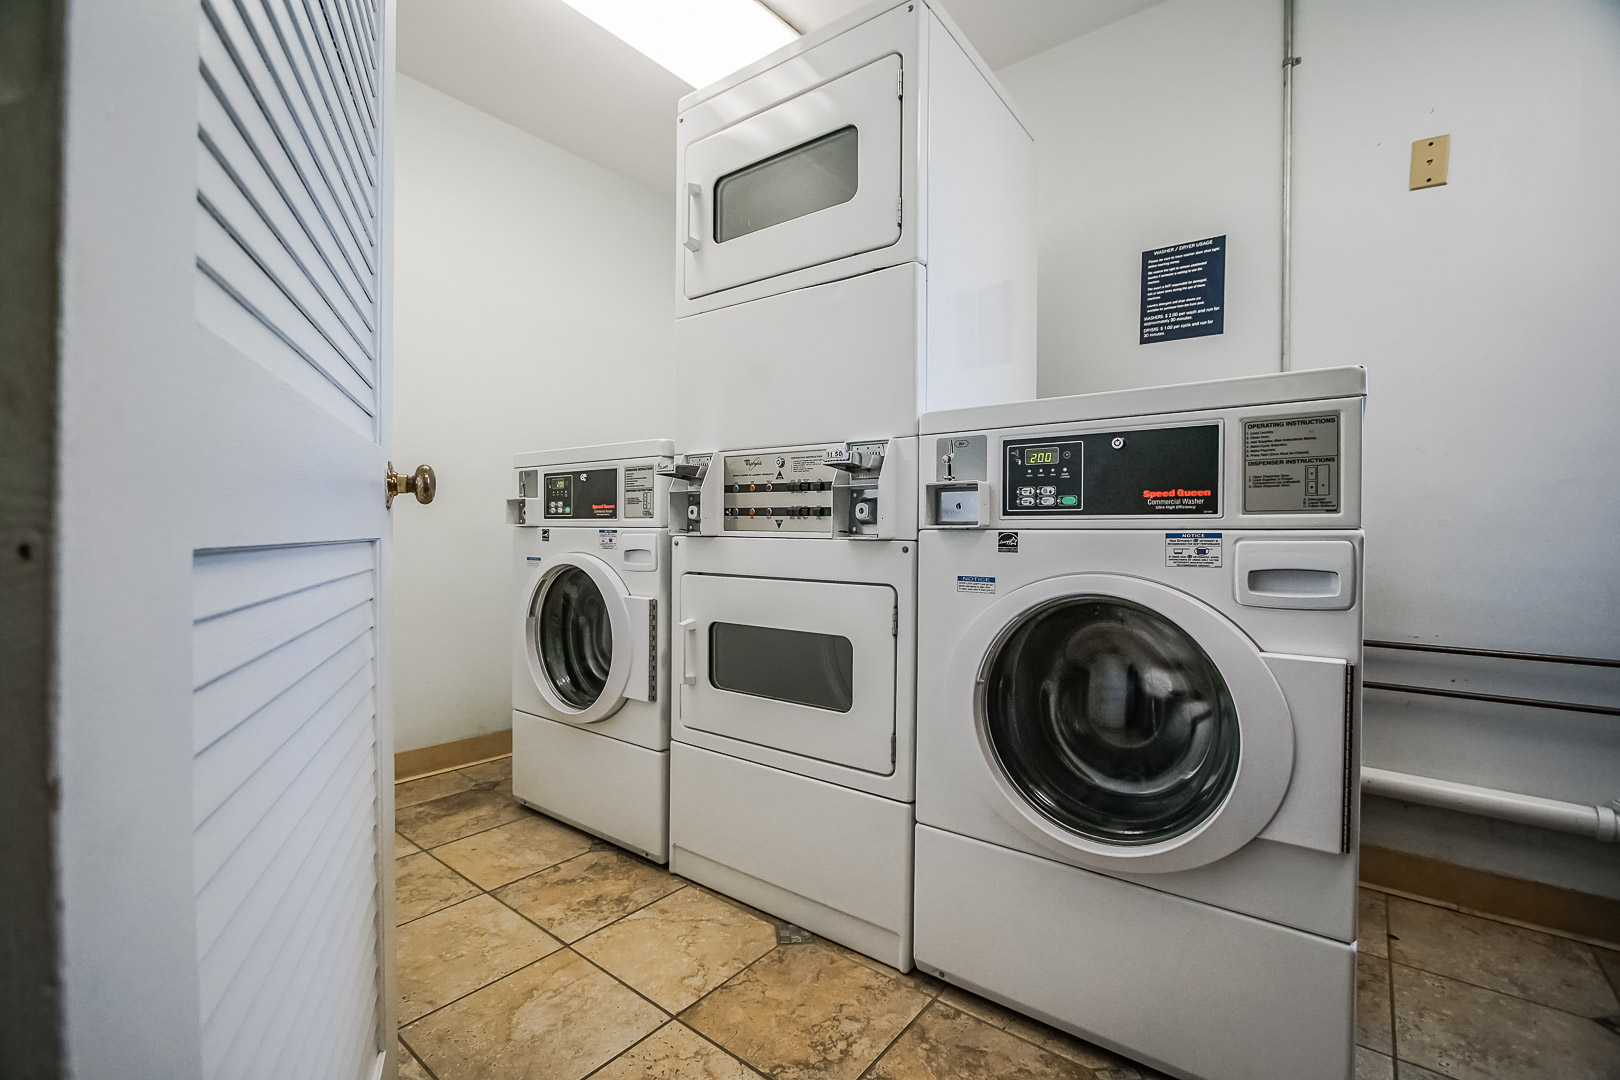 Laundry rooms available at VRI's Oceancliff Resort in Rhode Island.